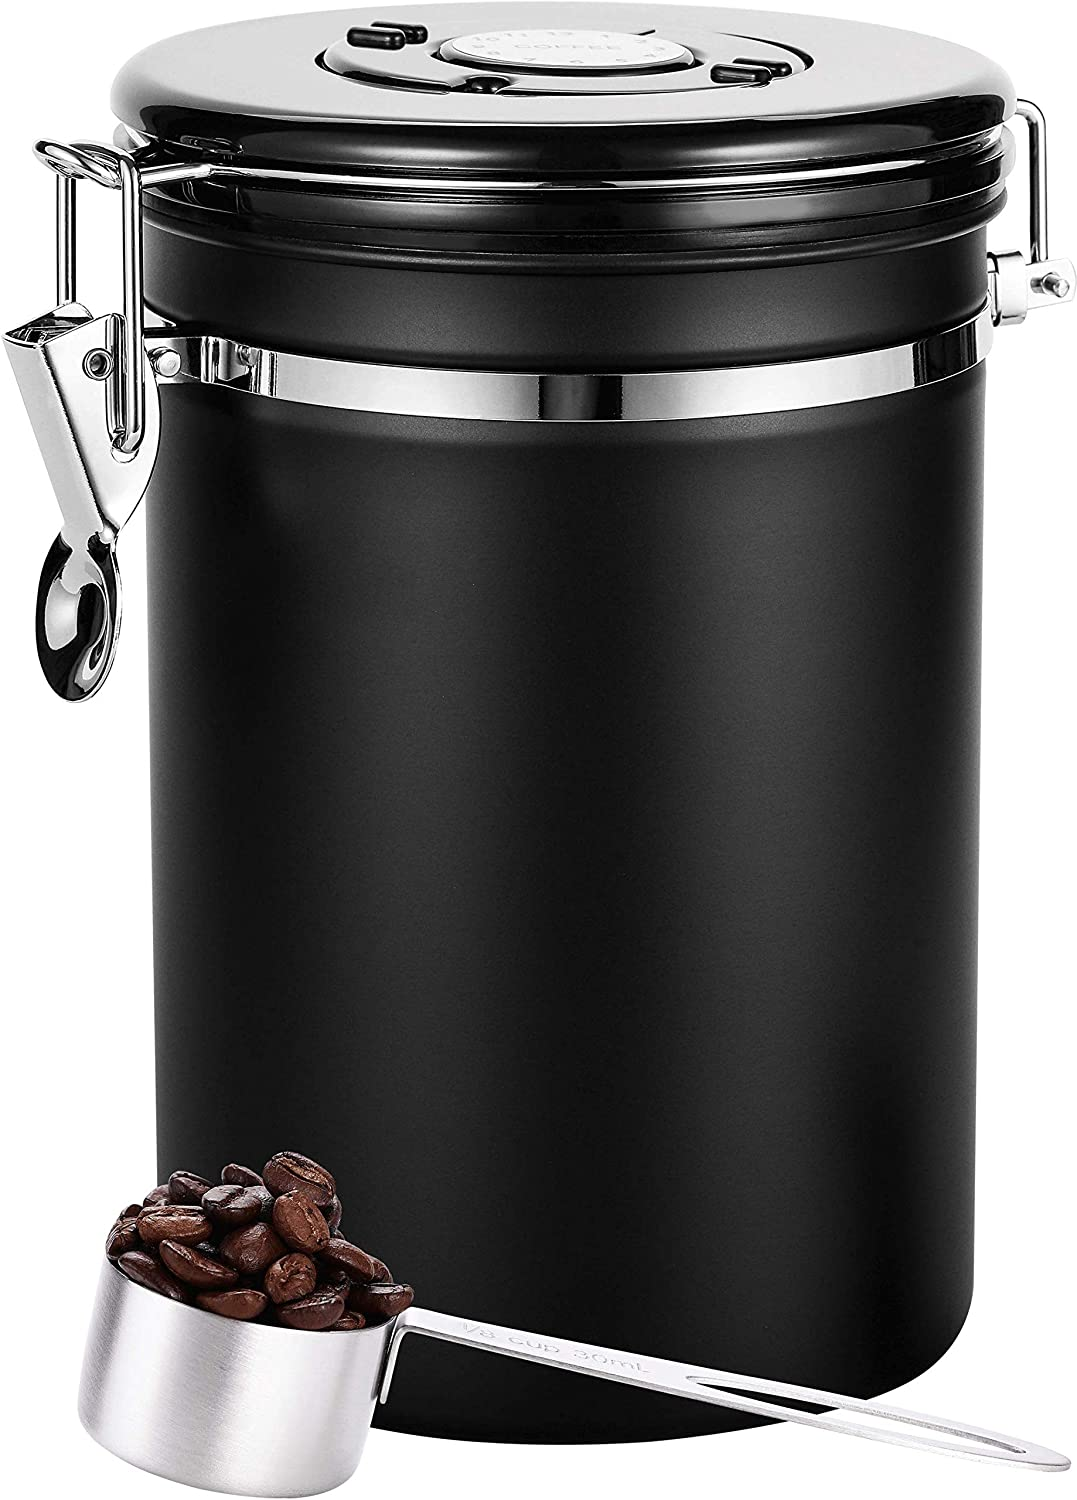 Coffee Canister Black Large,Airtight Coffee Canister With Scoop